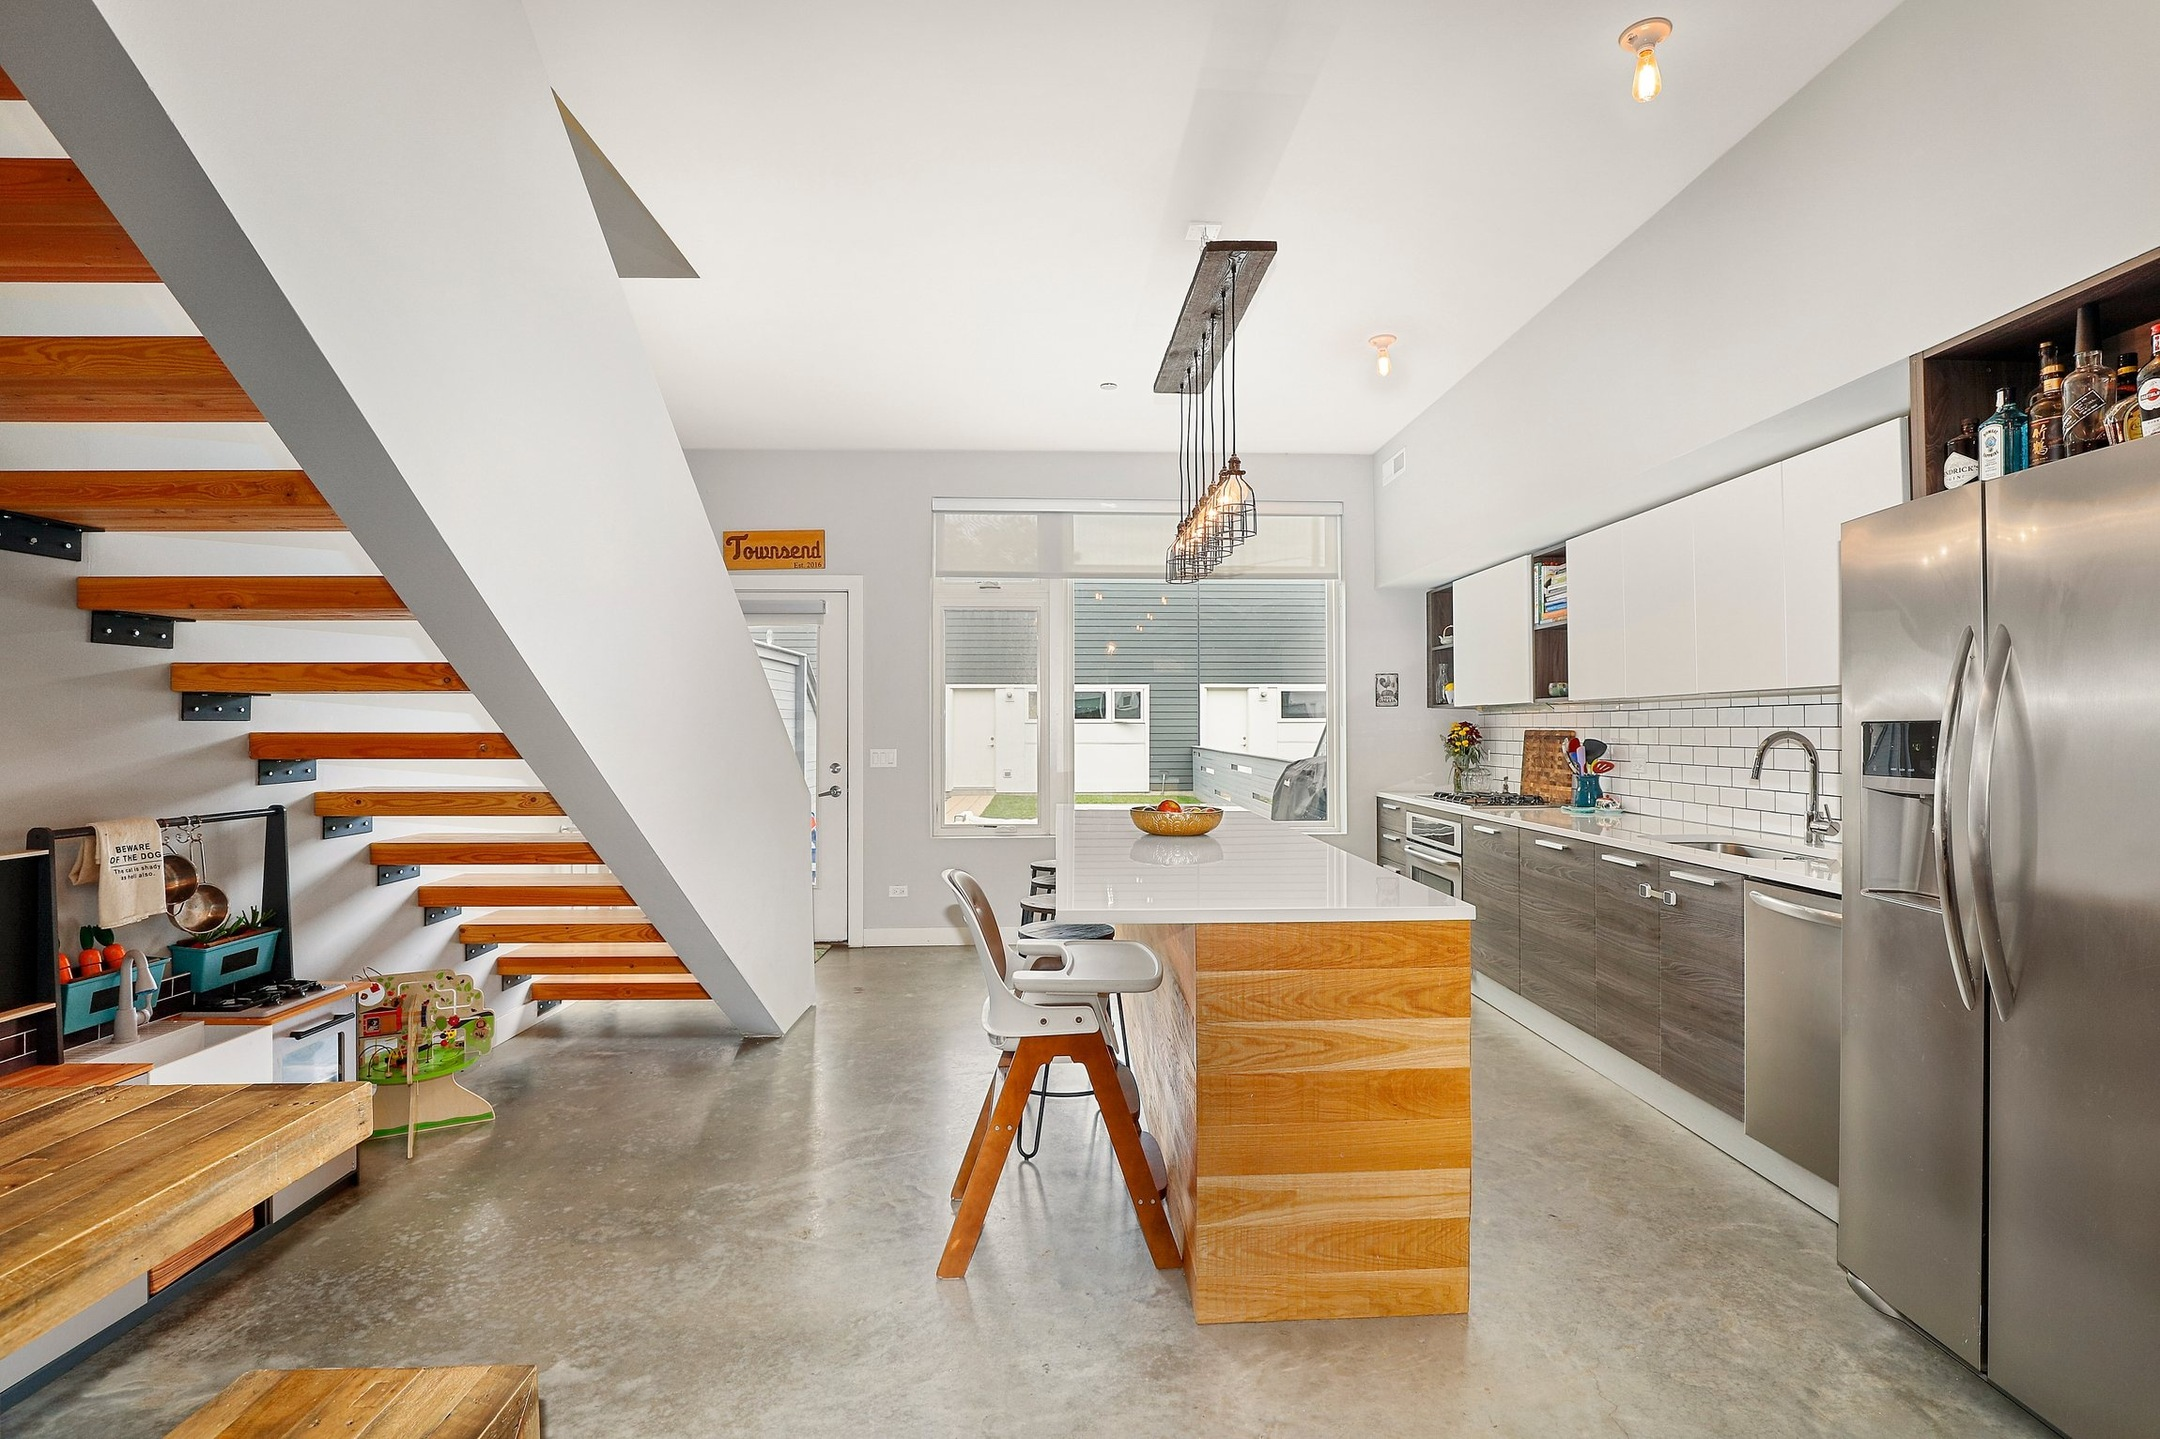 An open kitchen with a floating staircase leading to a second level. There's a wood and quartz island, gray cabinets, and stainless appliances.